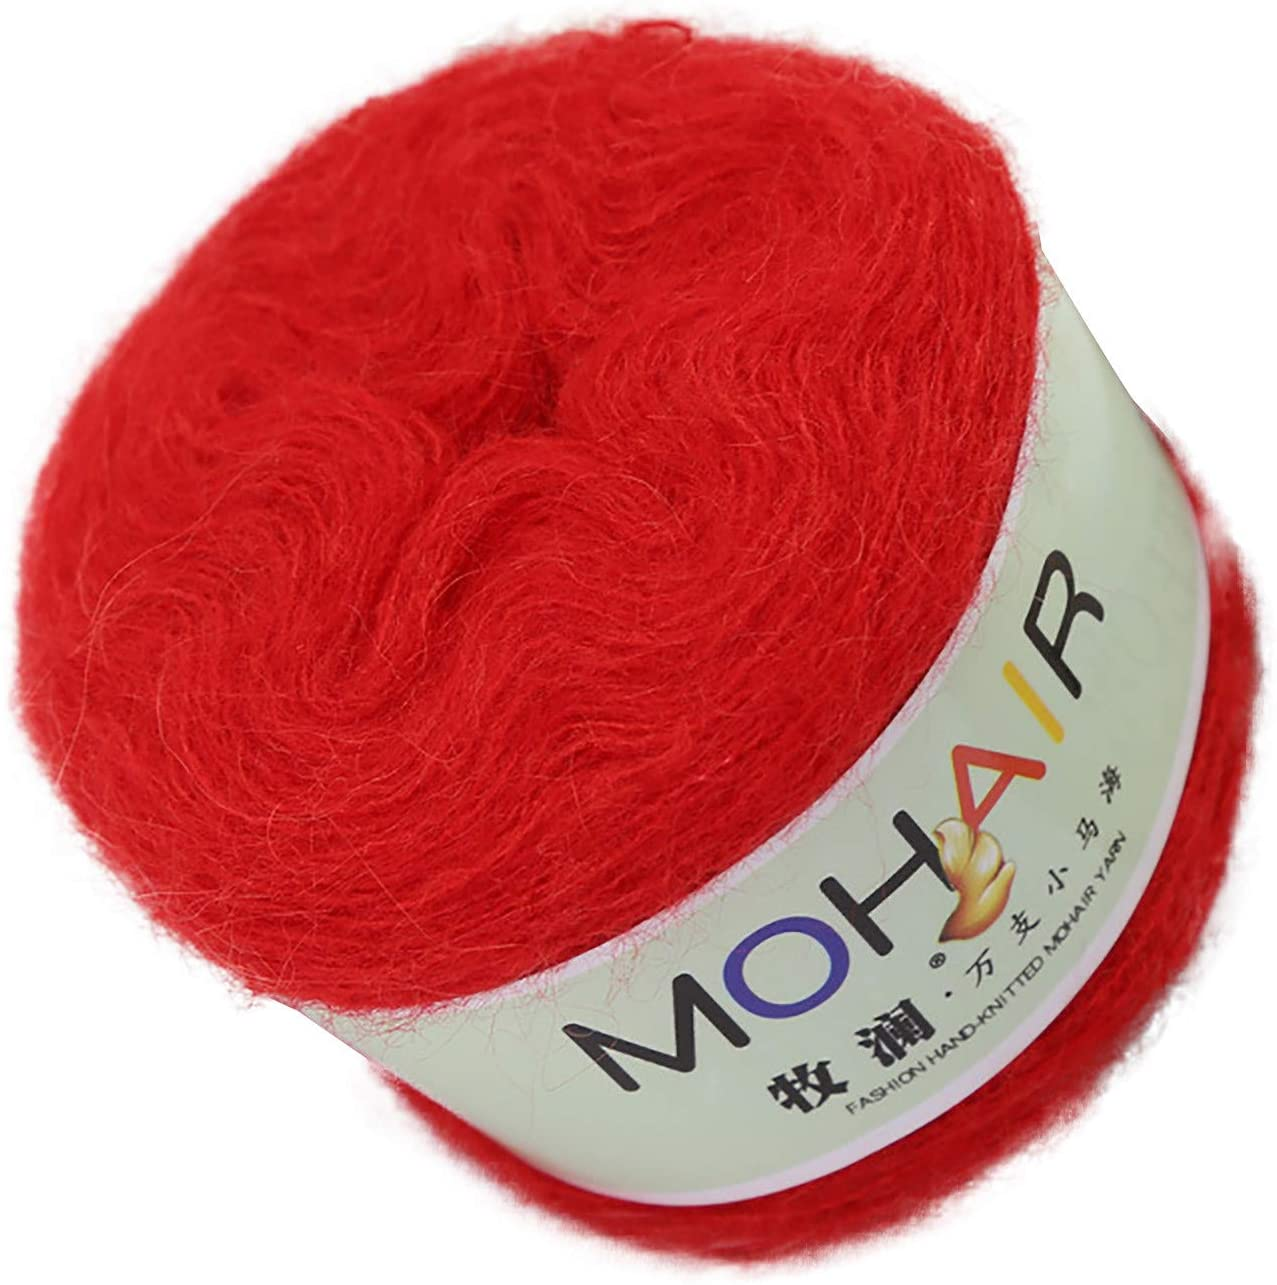 Soft Yarn for Knitting and Crochet, Mohair Knitting Yarn Hand Knitting Yarn Weaving Yarn Crochet Thread for Scarf Hat Sweater Baby Blanket (Red)